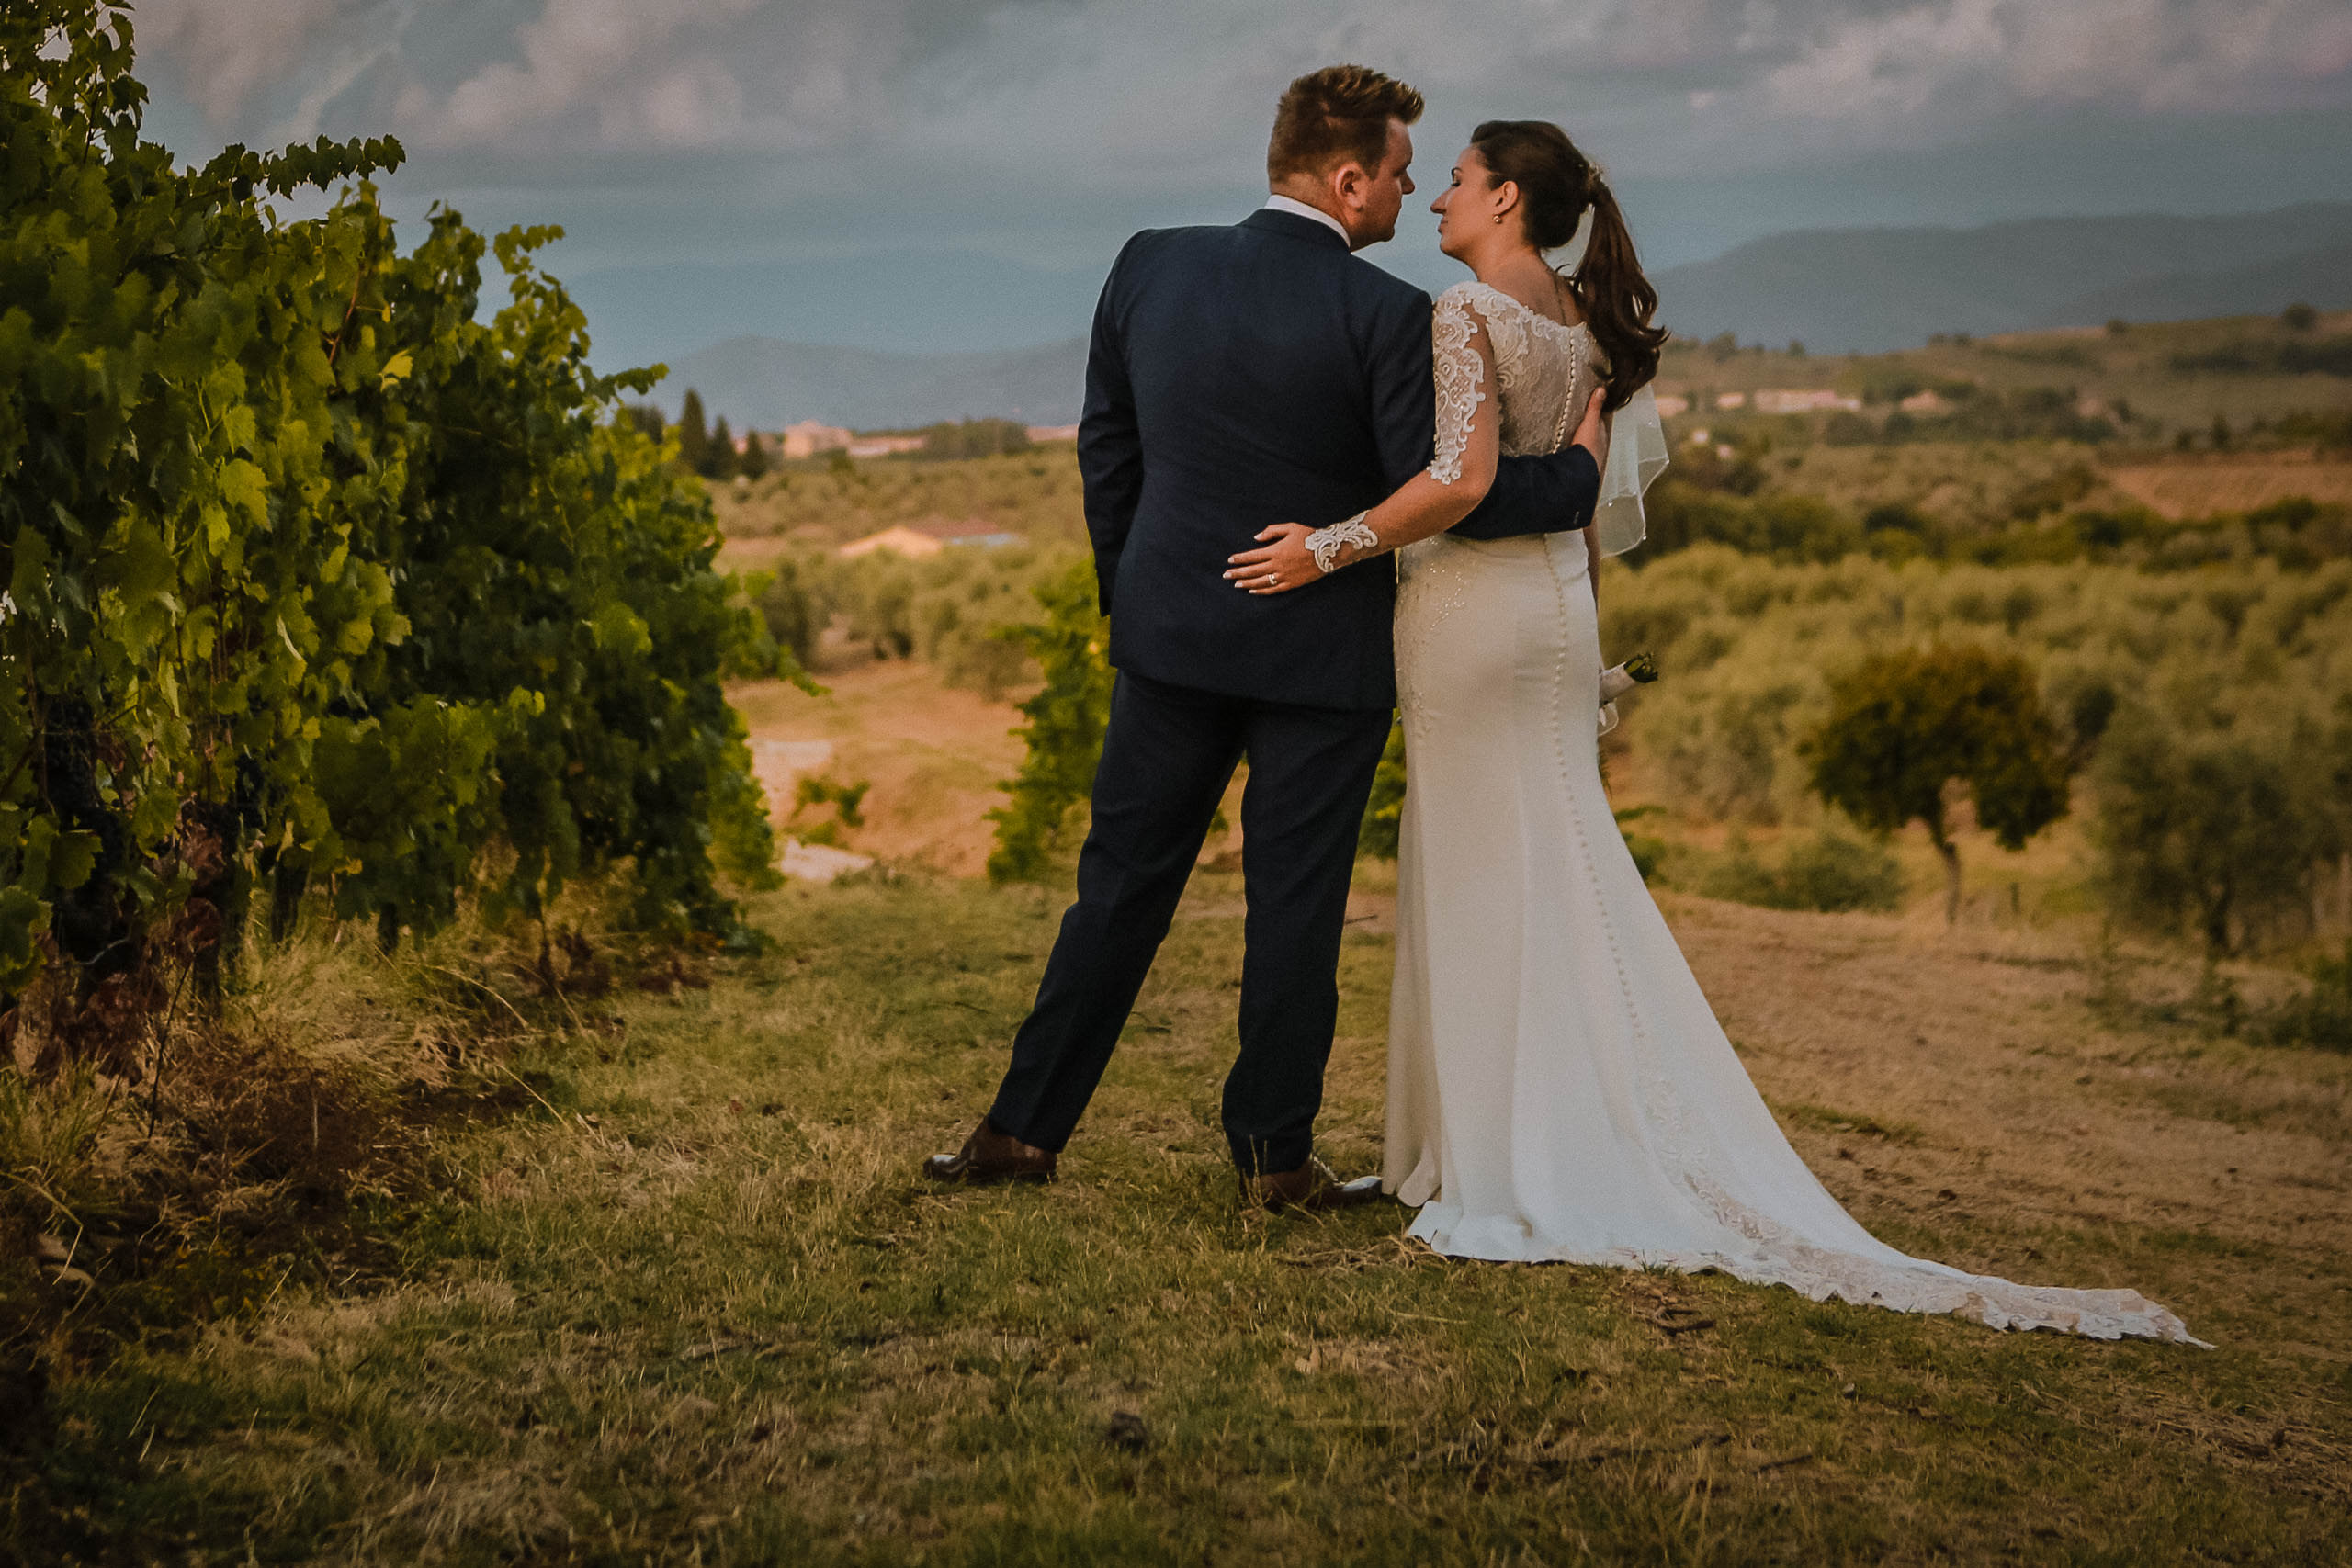 Tuscany wedding photography. Bride and groom in vineyards